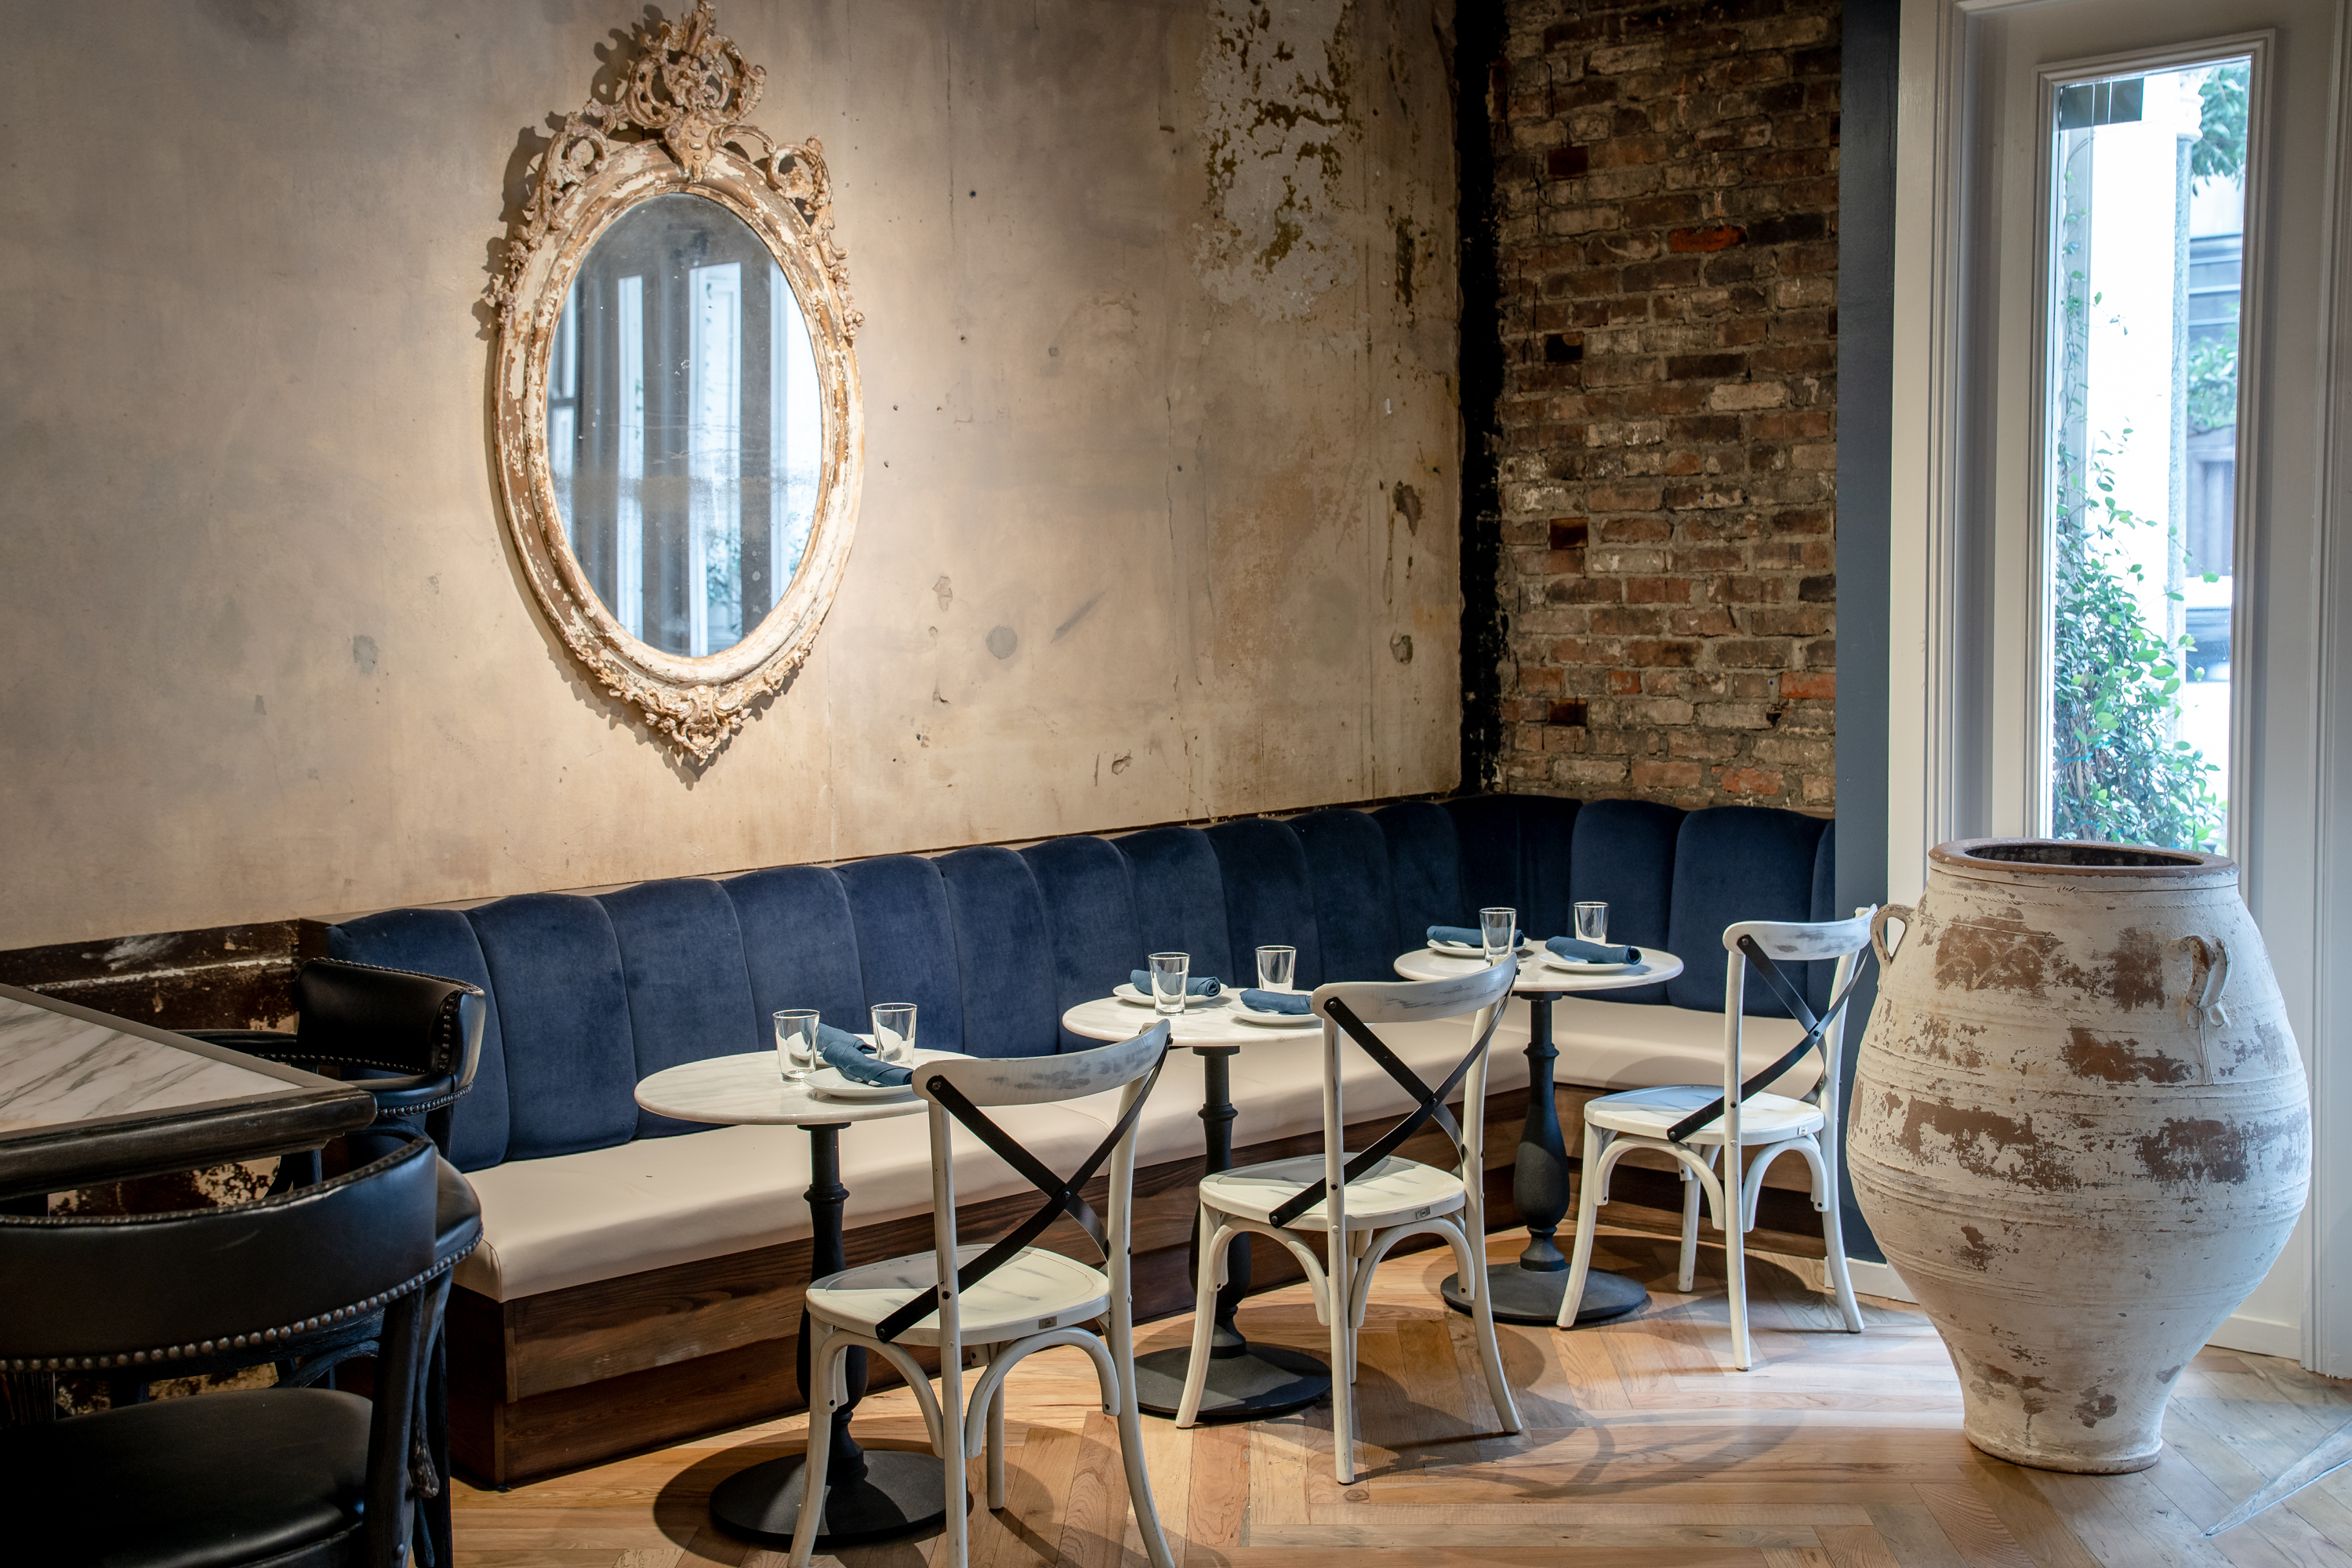 The interior of a restaurant with an oval mirror hanging on a wall, blue velvet bench seating, an small exposed brick wall and a large olive pot